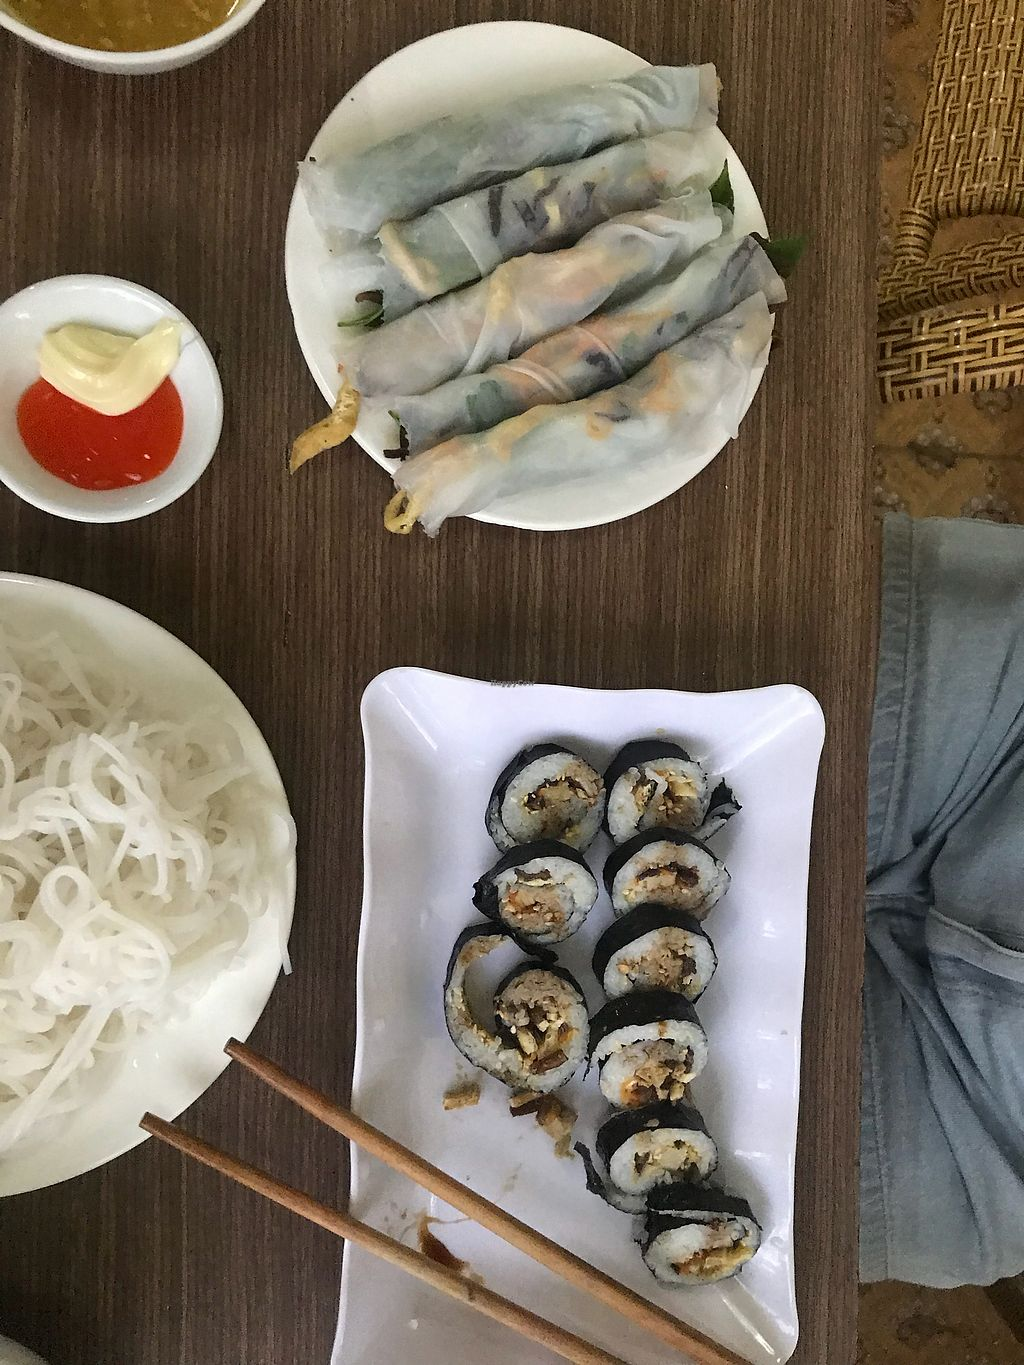 """Photo of An Nhien  by <a href=""""/members/profile/AnnaLevshin"""">AnnaLevshin</a> <br/>Vegan Sushi and Rice Paper Rolls ( called rice cakes or something on menu) <br/> April 14, 2018  - <a href='/contact/abuse/image/91296/385724'>Report</a>"""